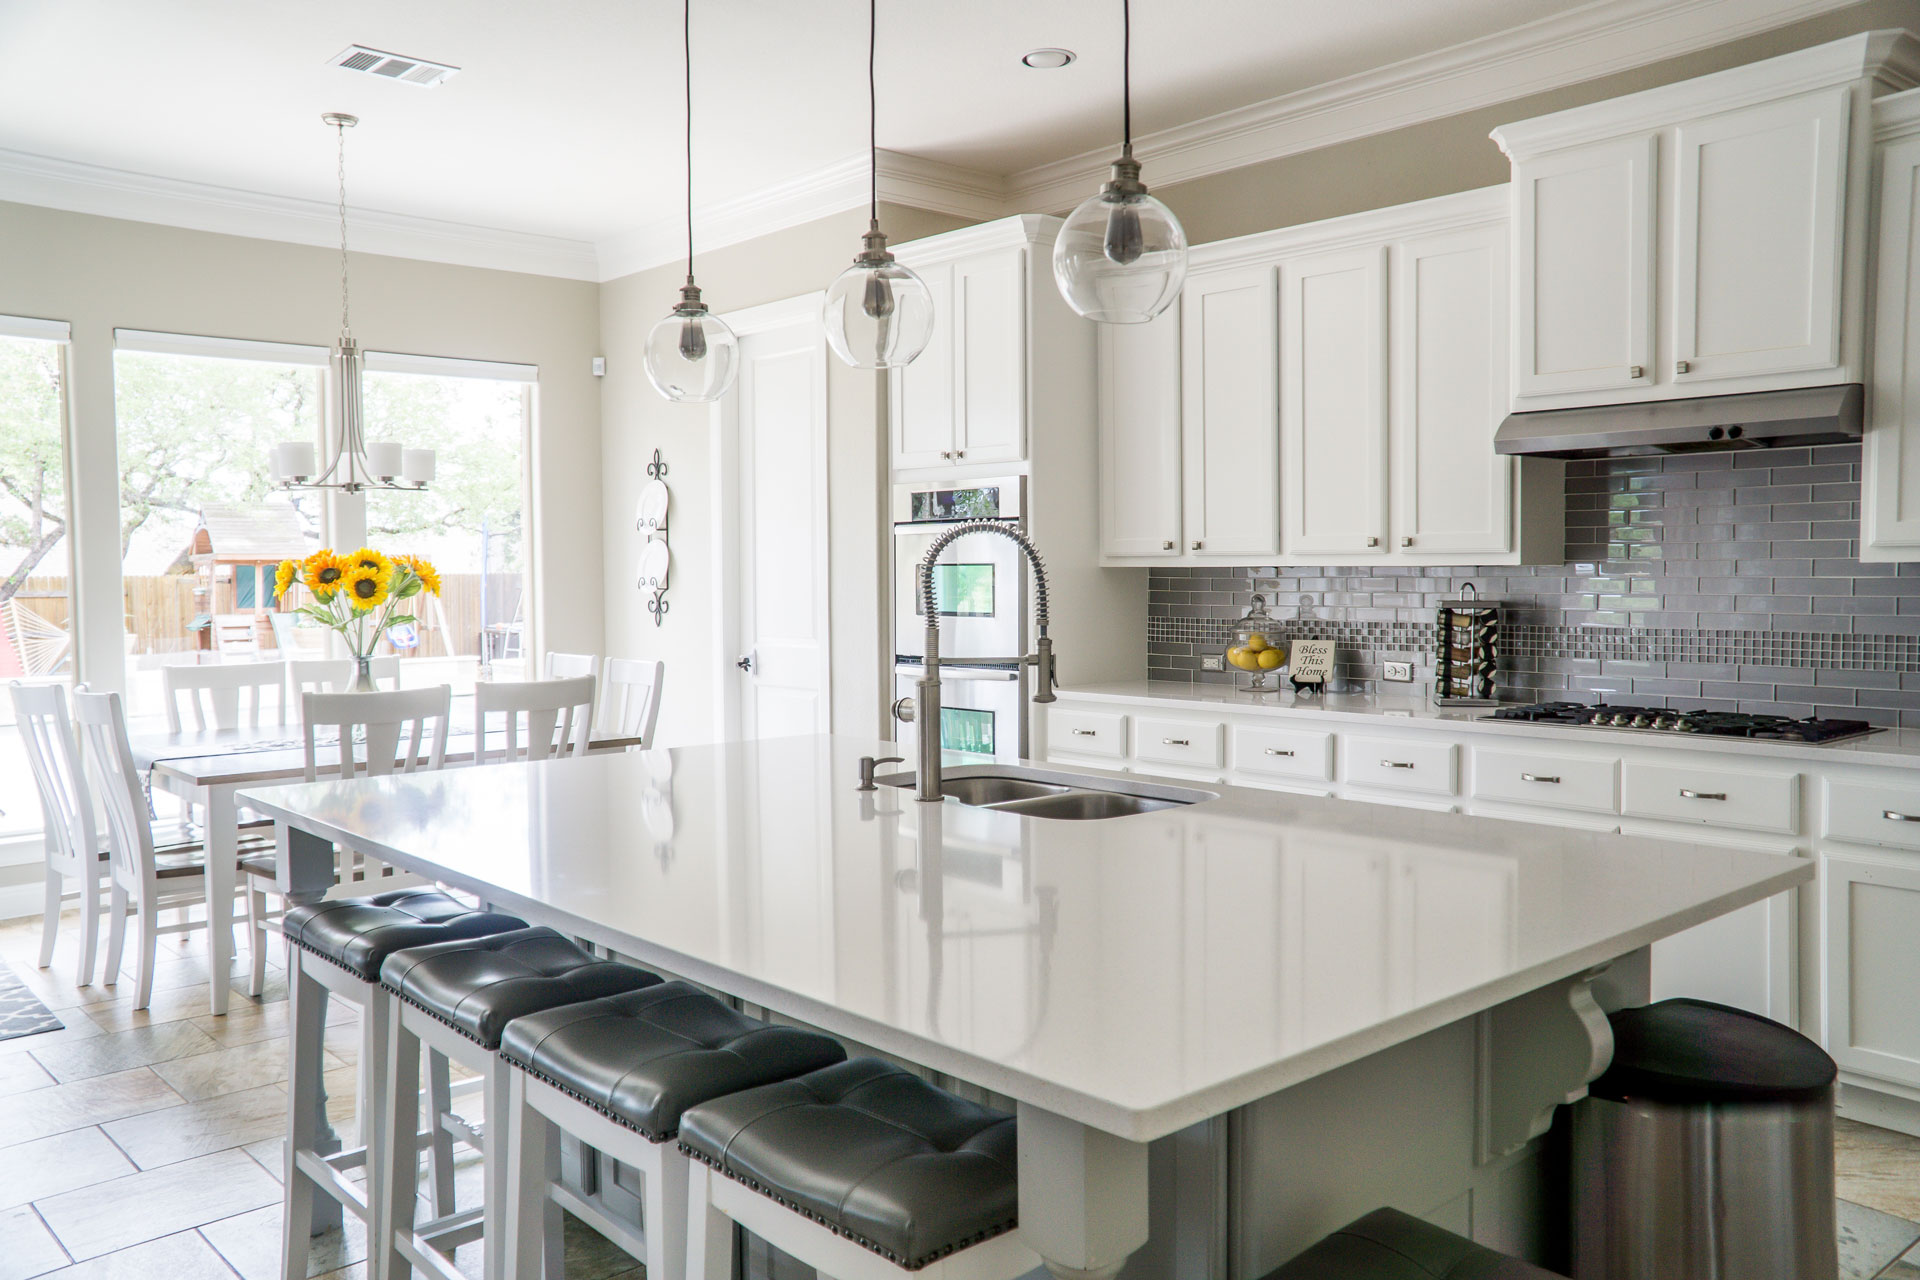 Kami Countertops Your Only Full Service Countertop Shop In